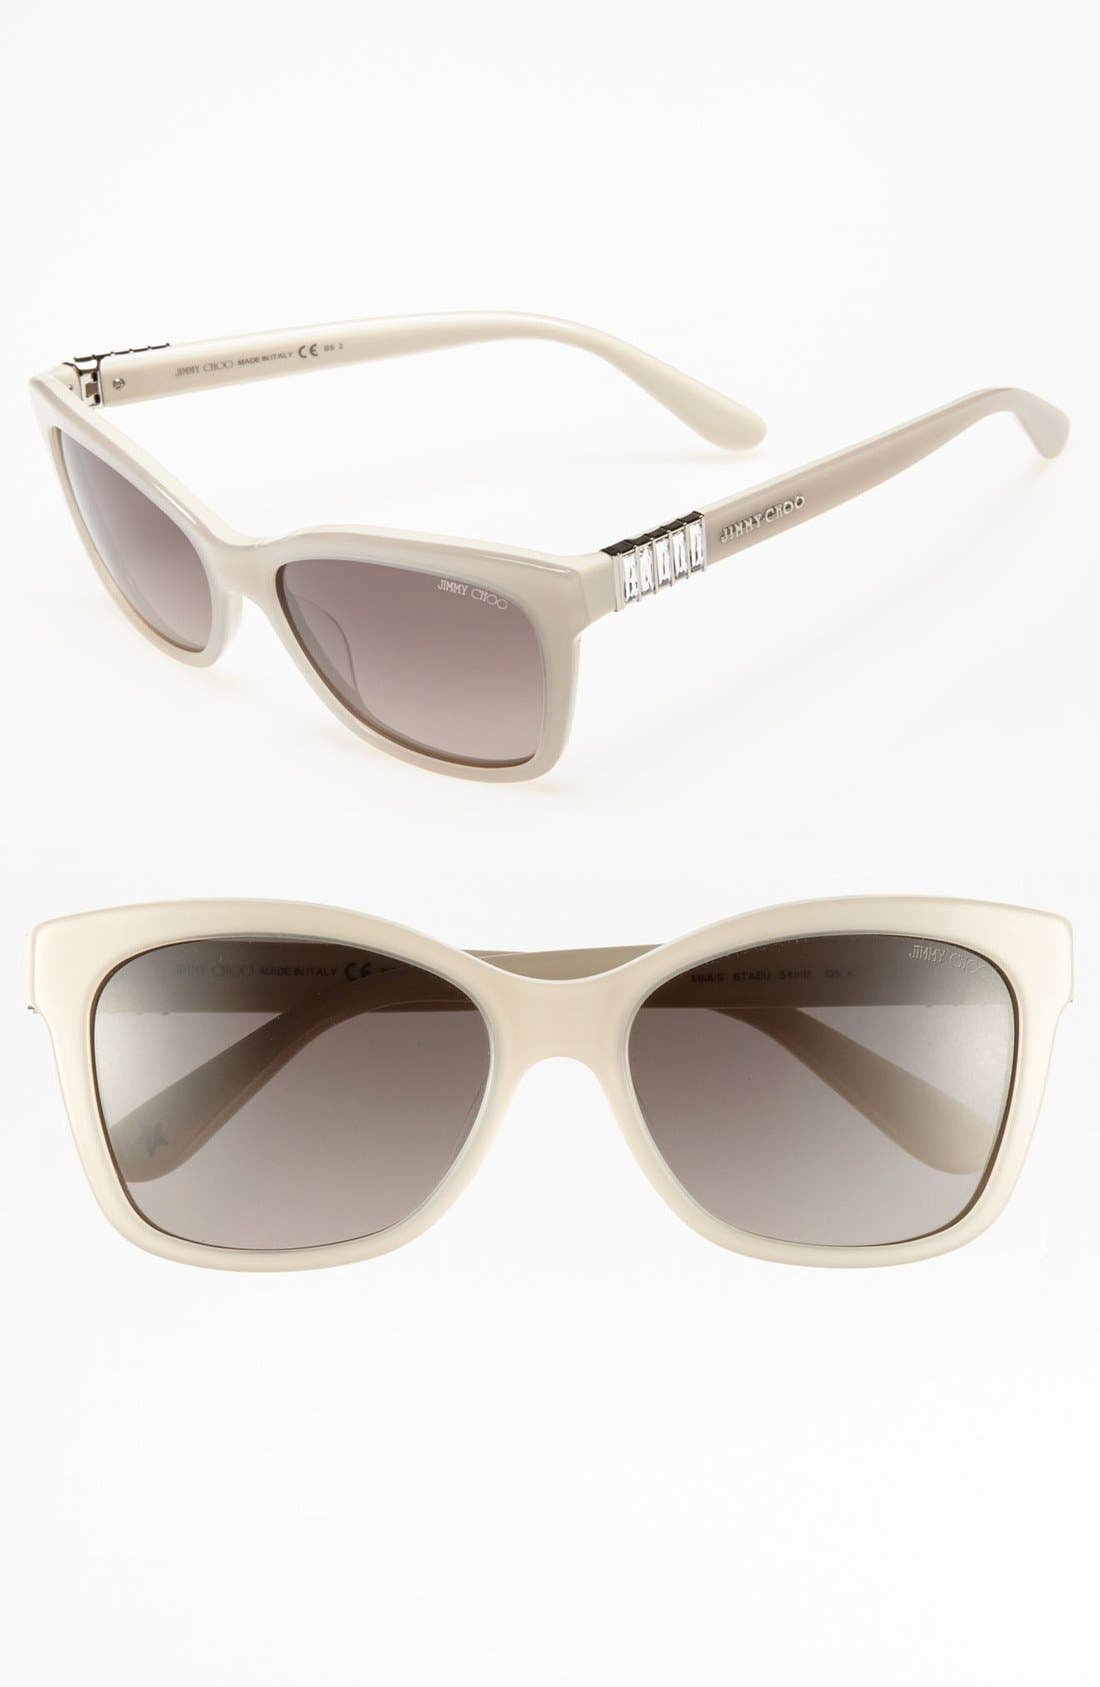 Alternate Image 1 Selected - Jimmy Choo 'Mimi' 54mm Sunglasses